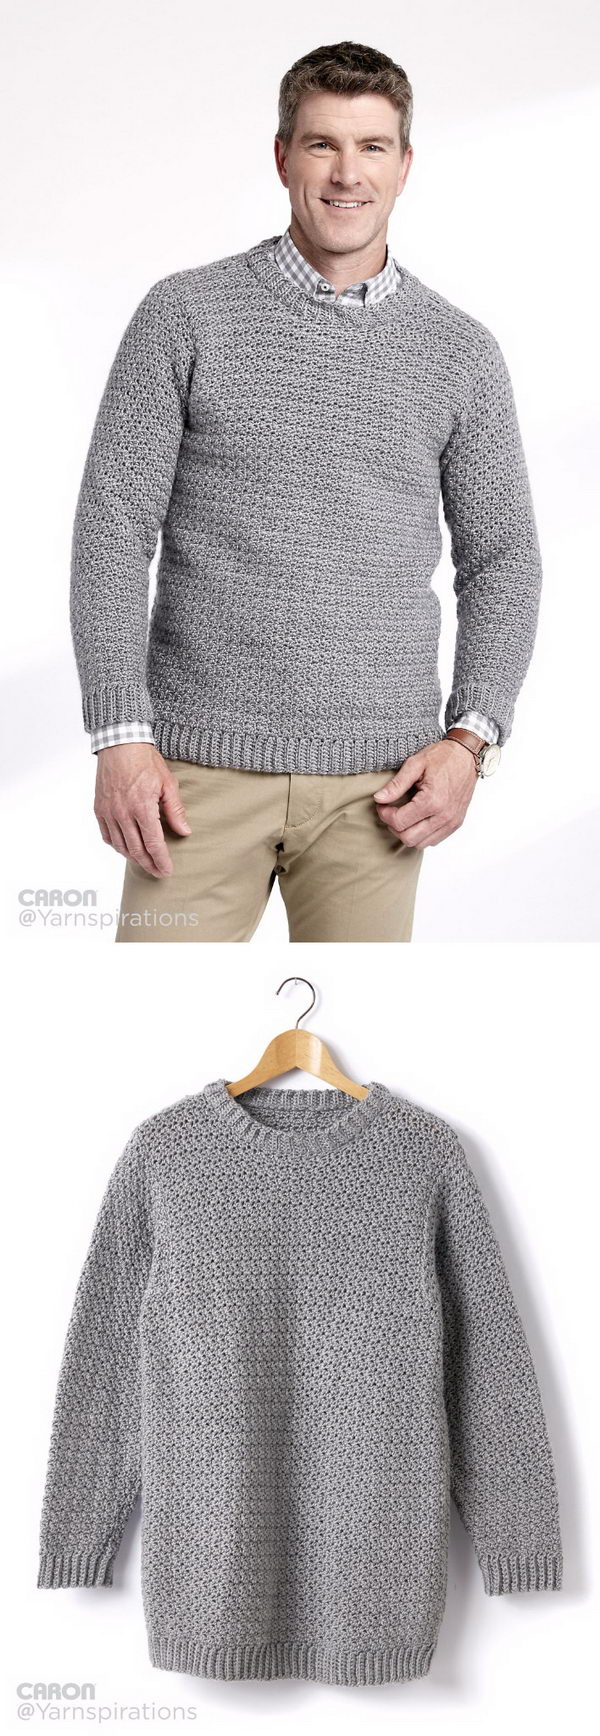 Adult Crochet Crew Neck Pullover.